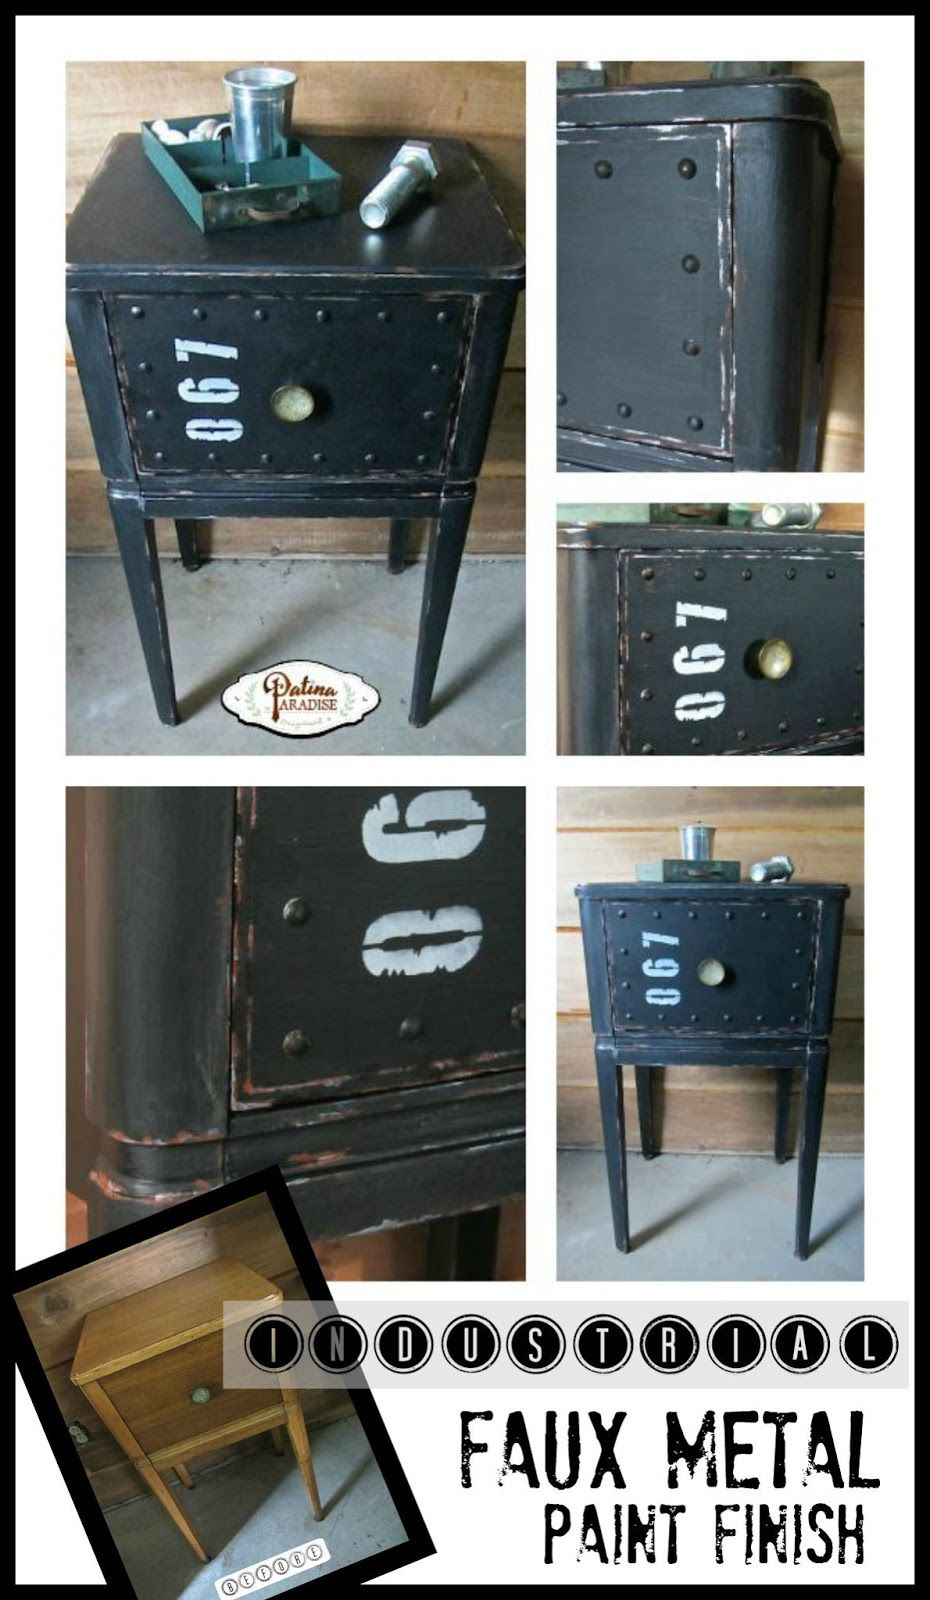 Make Wood Furniture Look Like It Has A Metal Industrial Look With A Paint Finish That Is Easy To